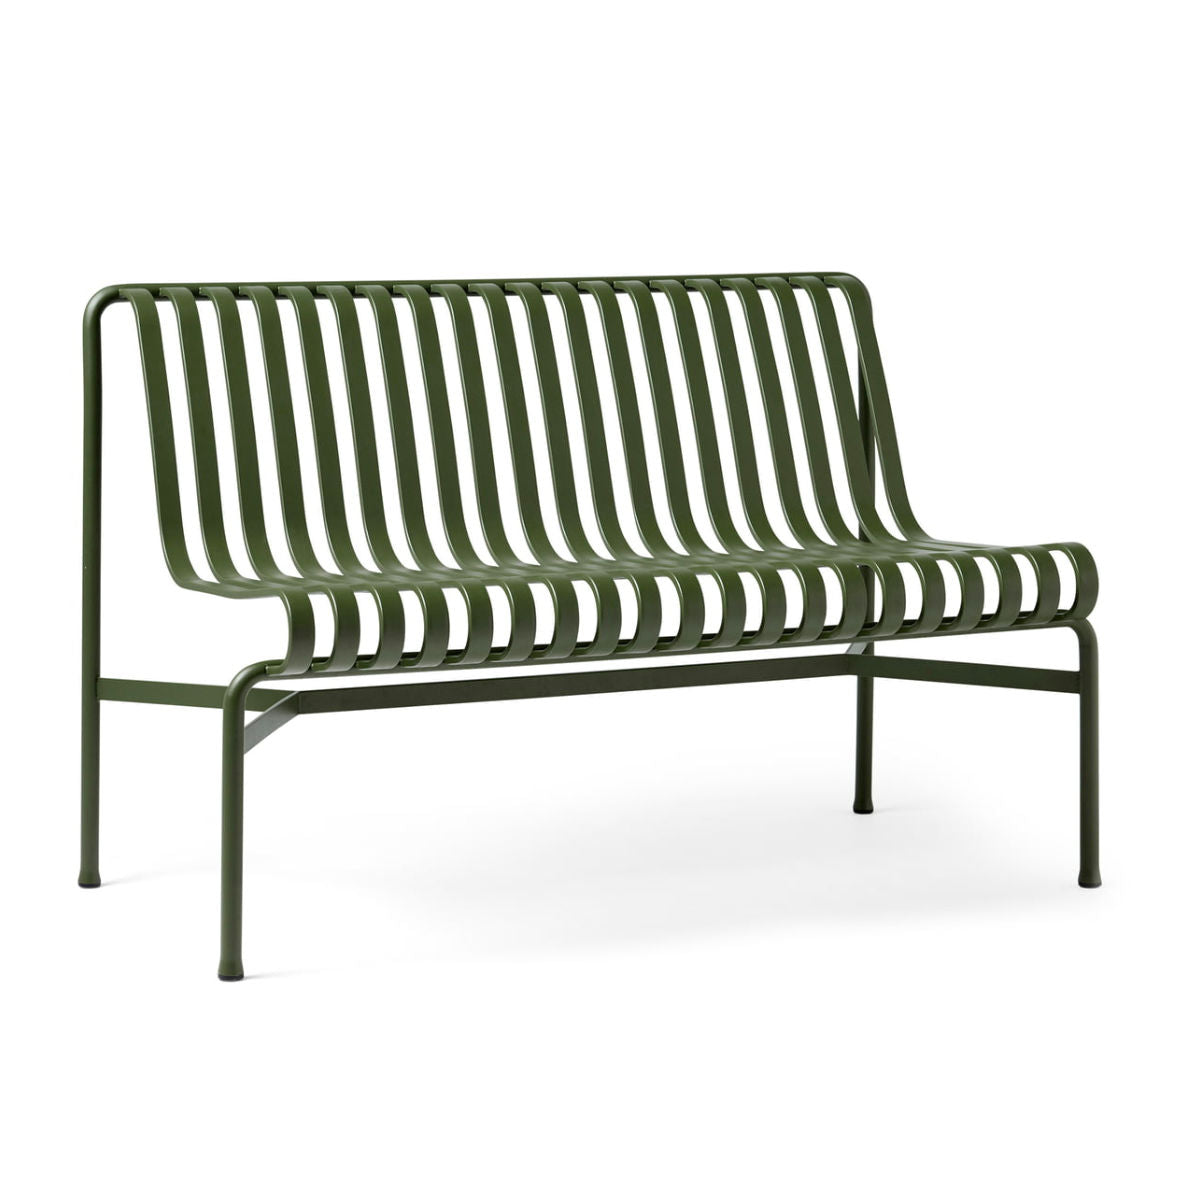 Hay Palissade dining bench without armrest